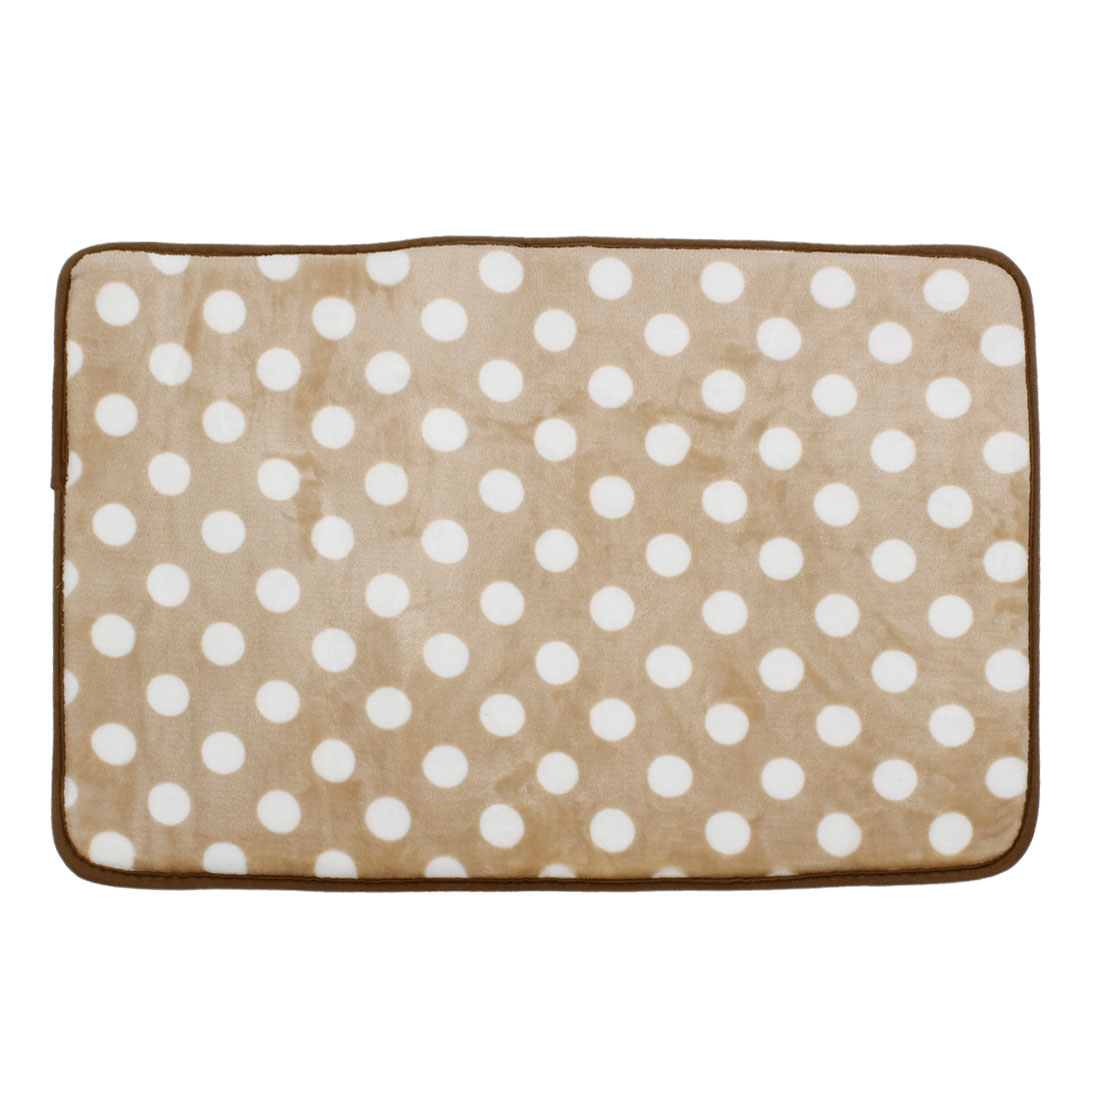 Light Brown Fleece Dots Pattern Bathroom Floor Mat Area Rug Carpet 60cm x 40cm